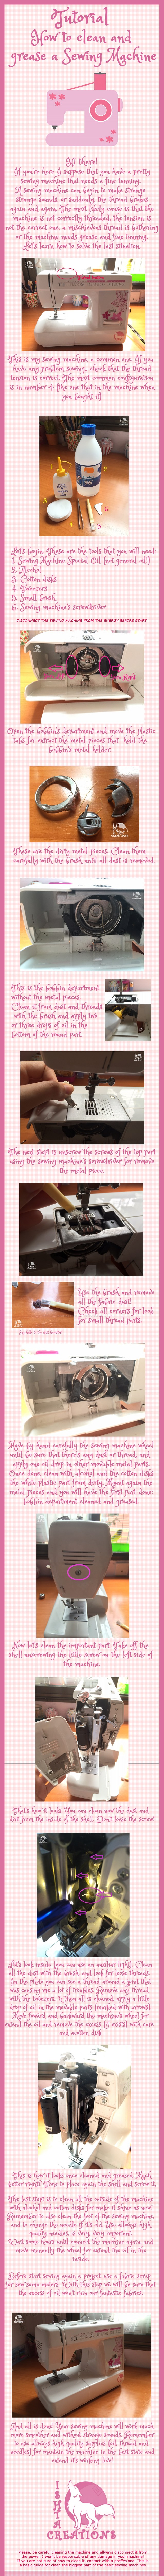 Tutorial: How to clean and grease a sewing machine